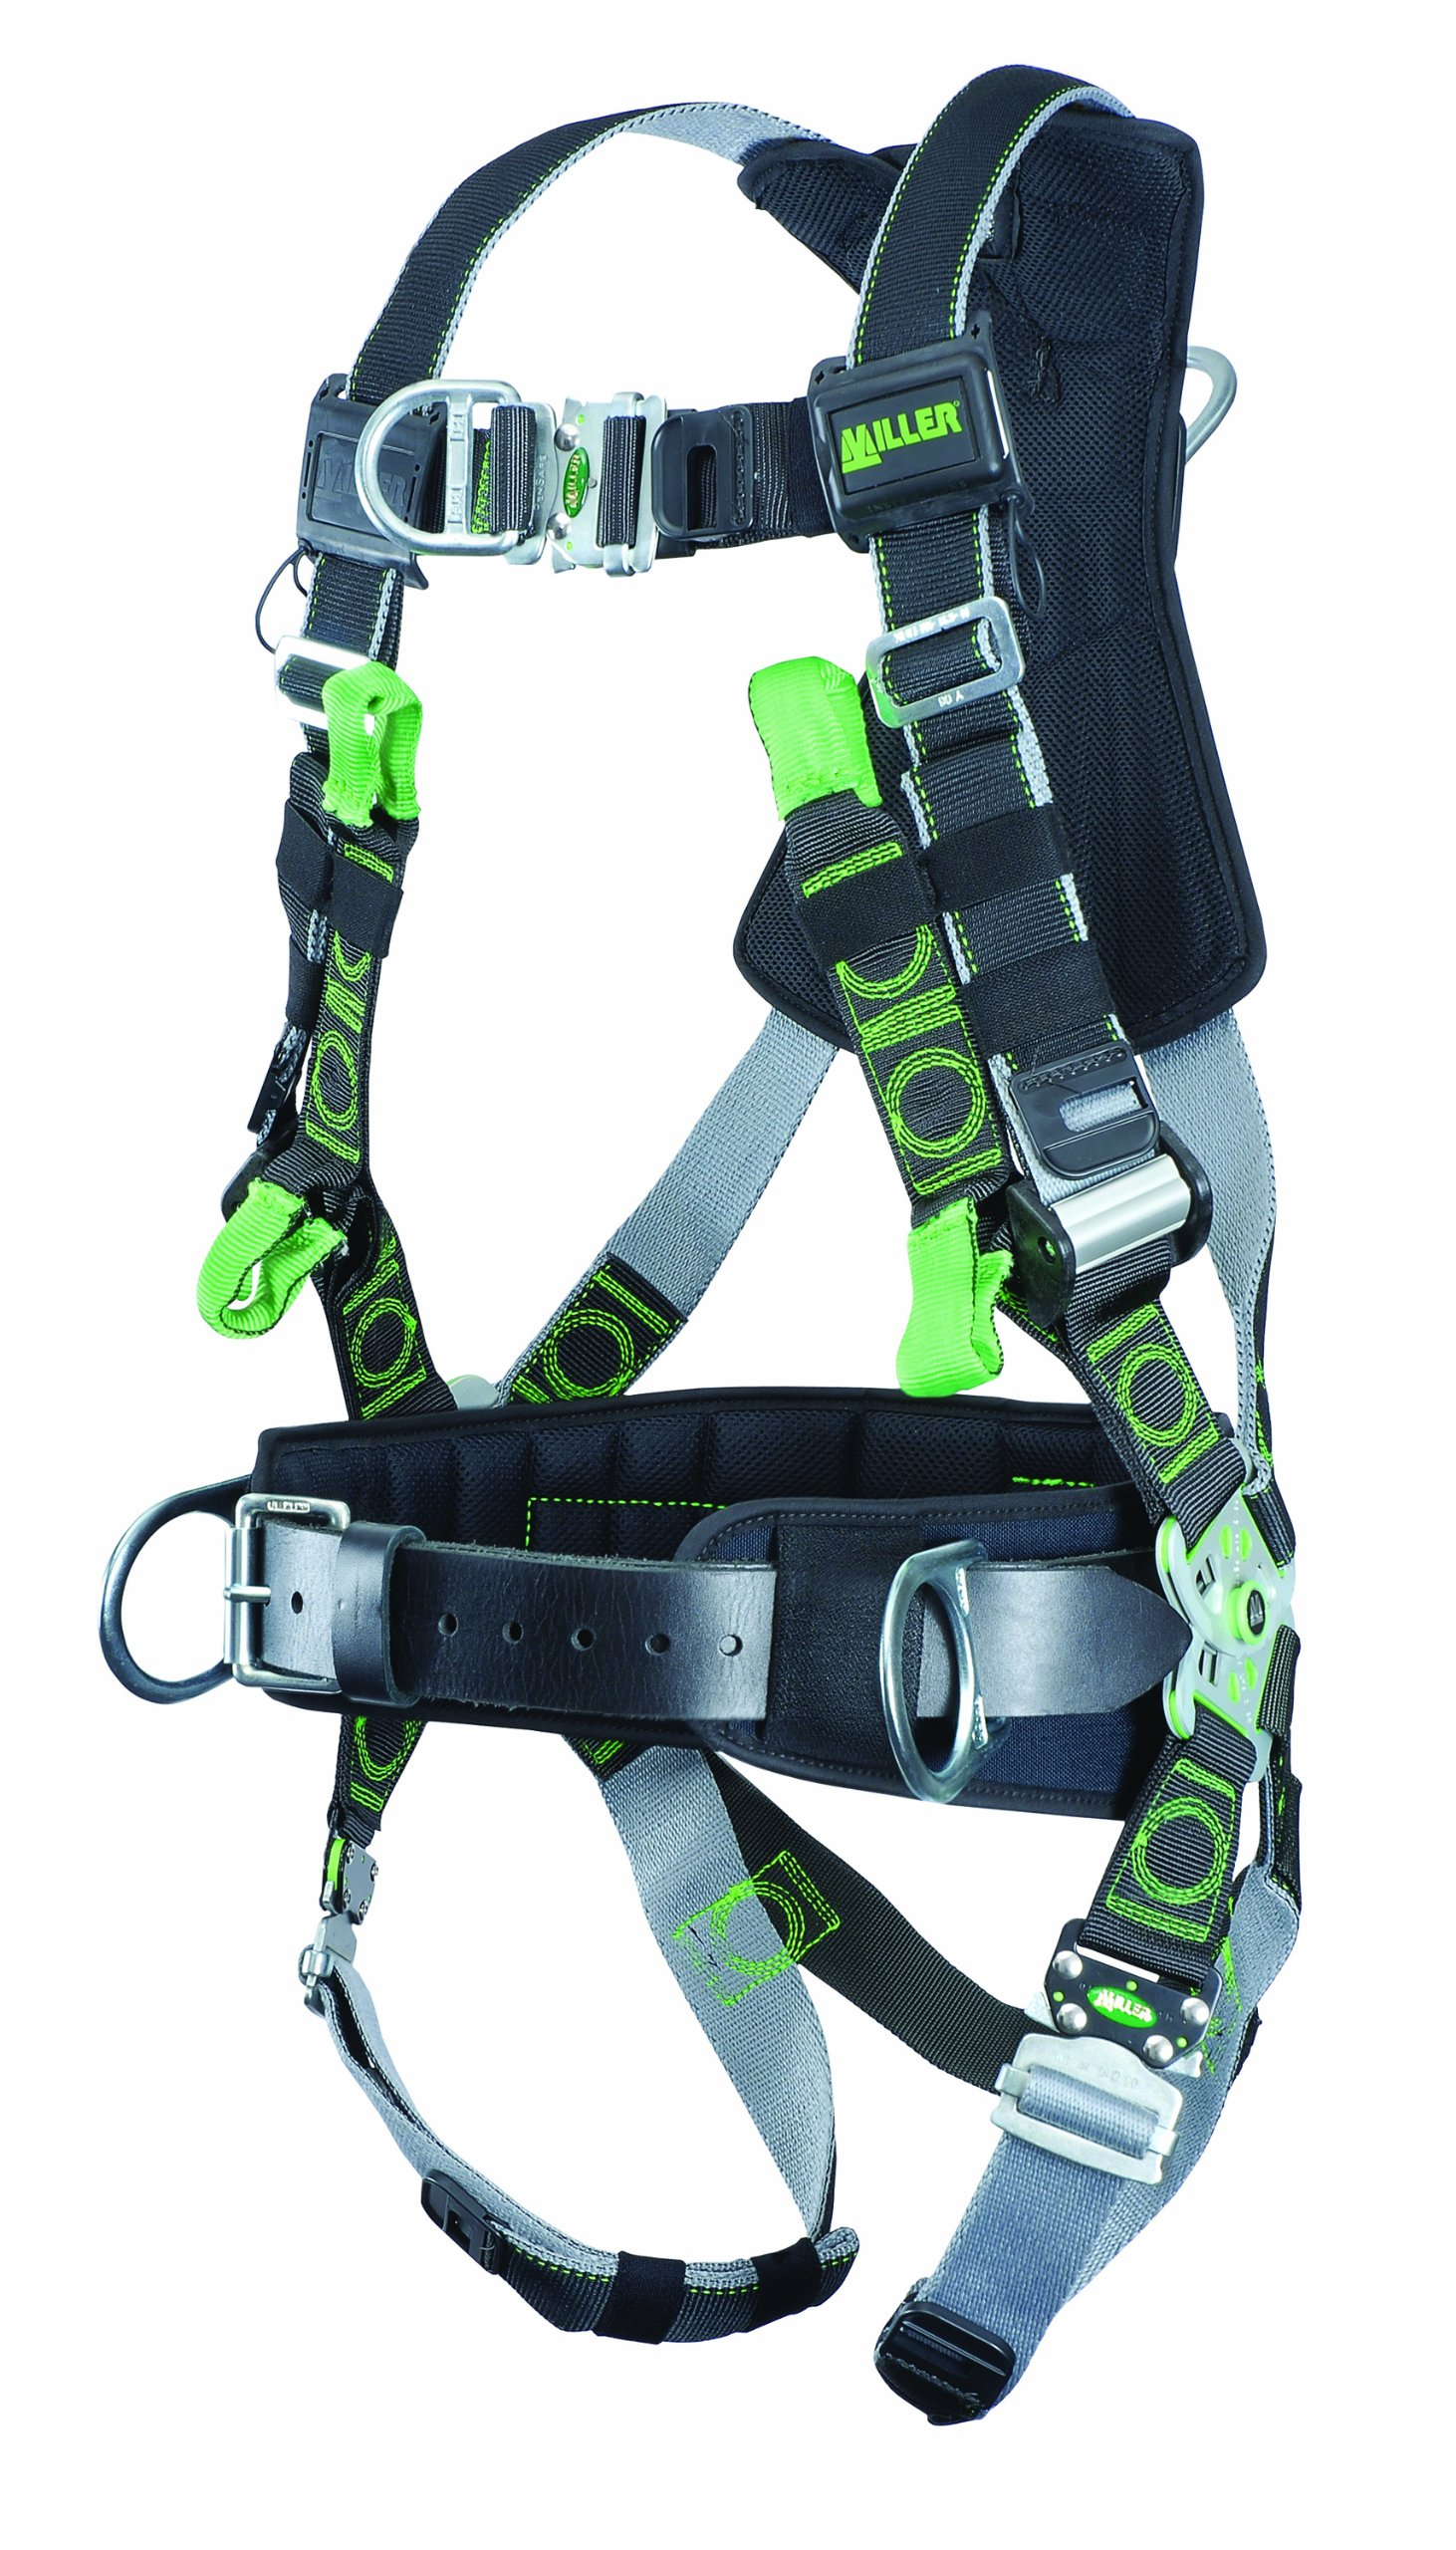 Miller Revolution Full Body Safety Harness with Quick Connectors, Front D-Ring, Suspension Loop, Removable Belt, Side D-Rings & Pad, Small/Medium, 400 lb. Capacity (RDTFDSL-QC-BDP/S/MBK)